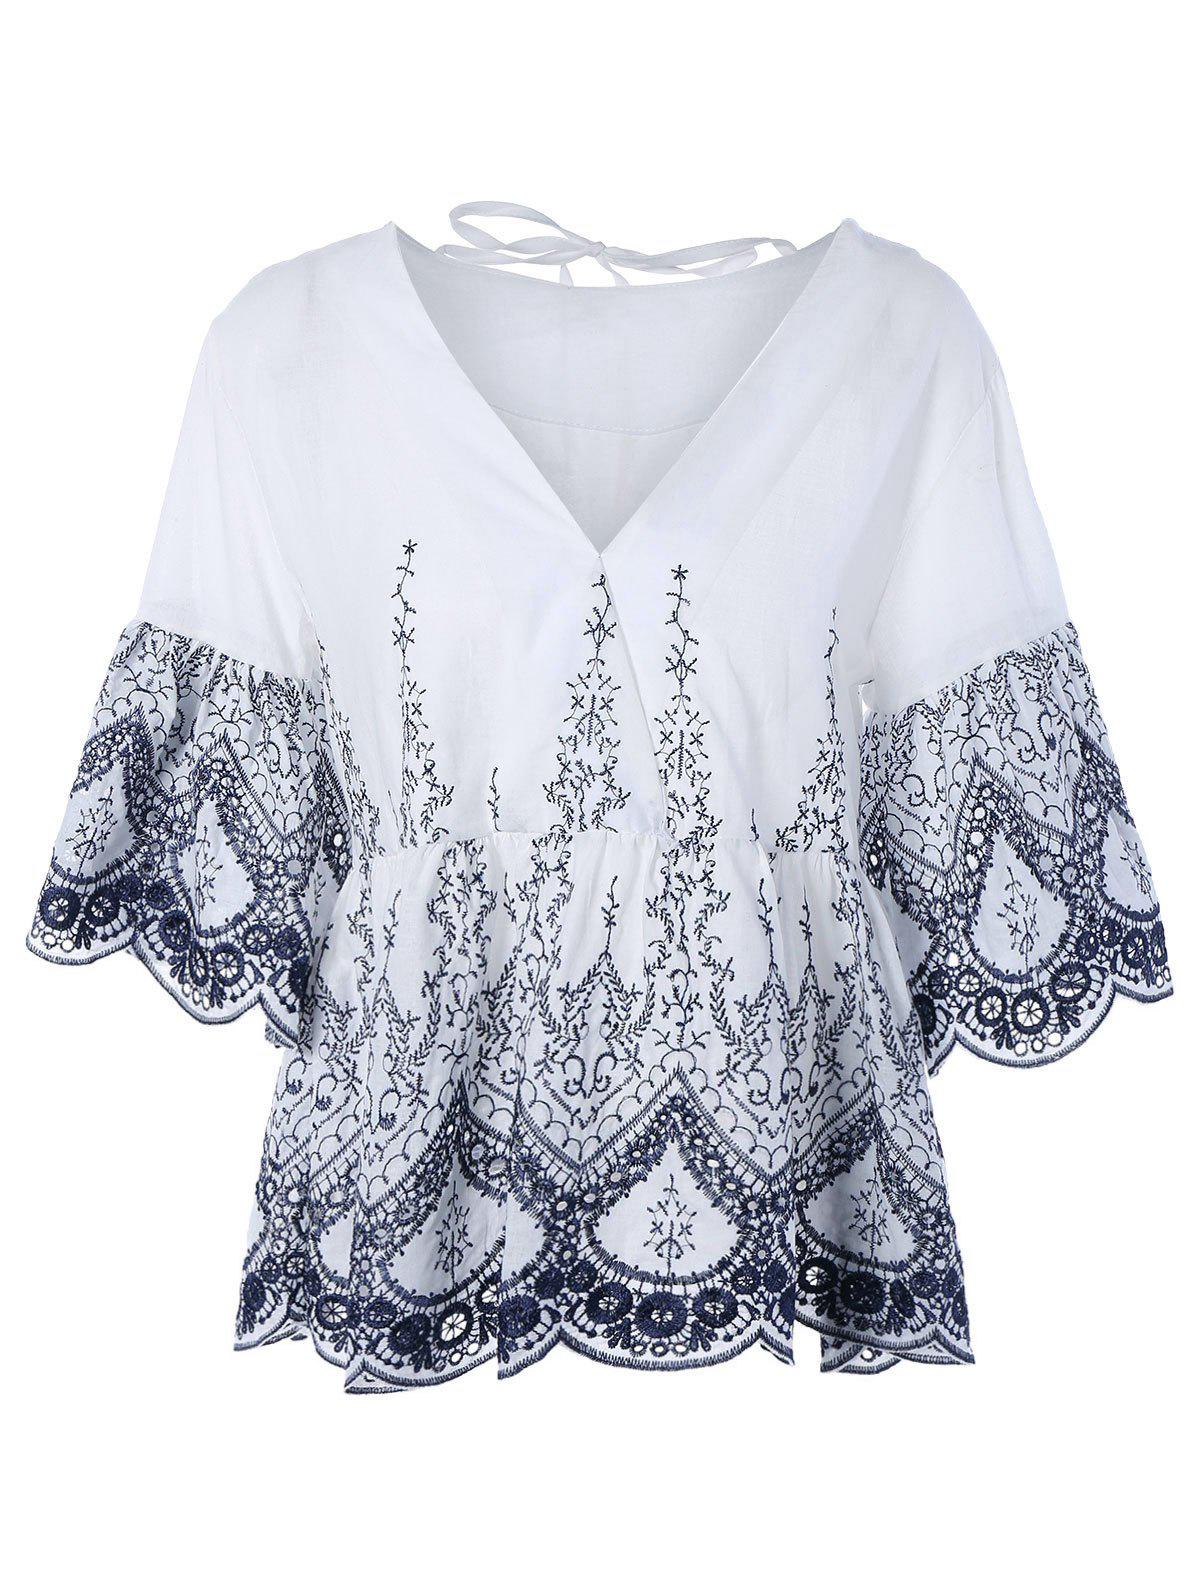 Ruffle V Neck Loose-Fitting Embroidered Blouse - ONE SIZE WHITE